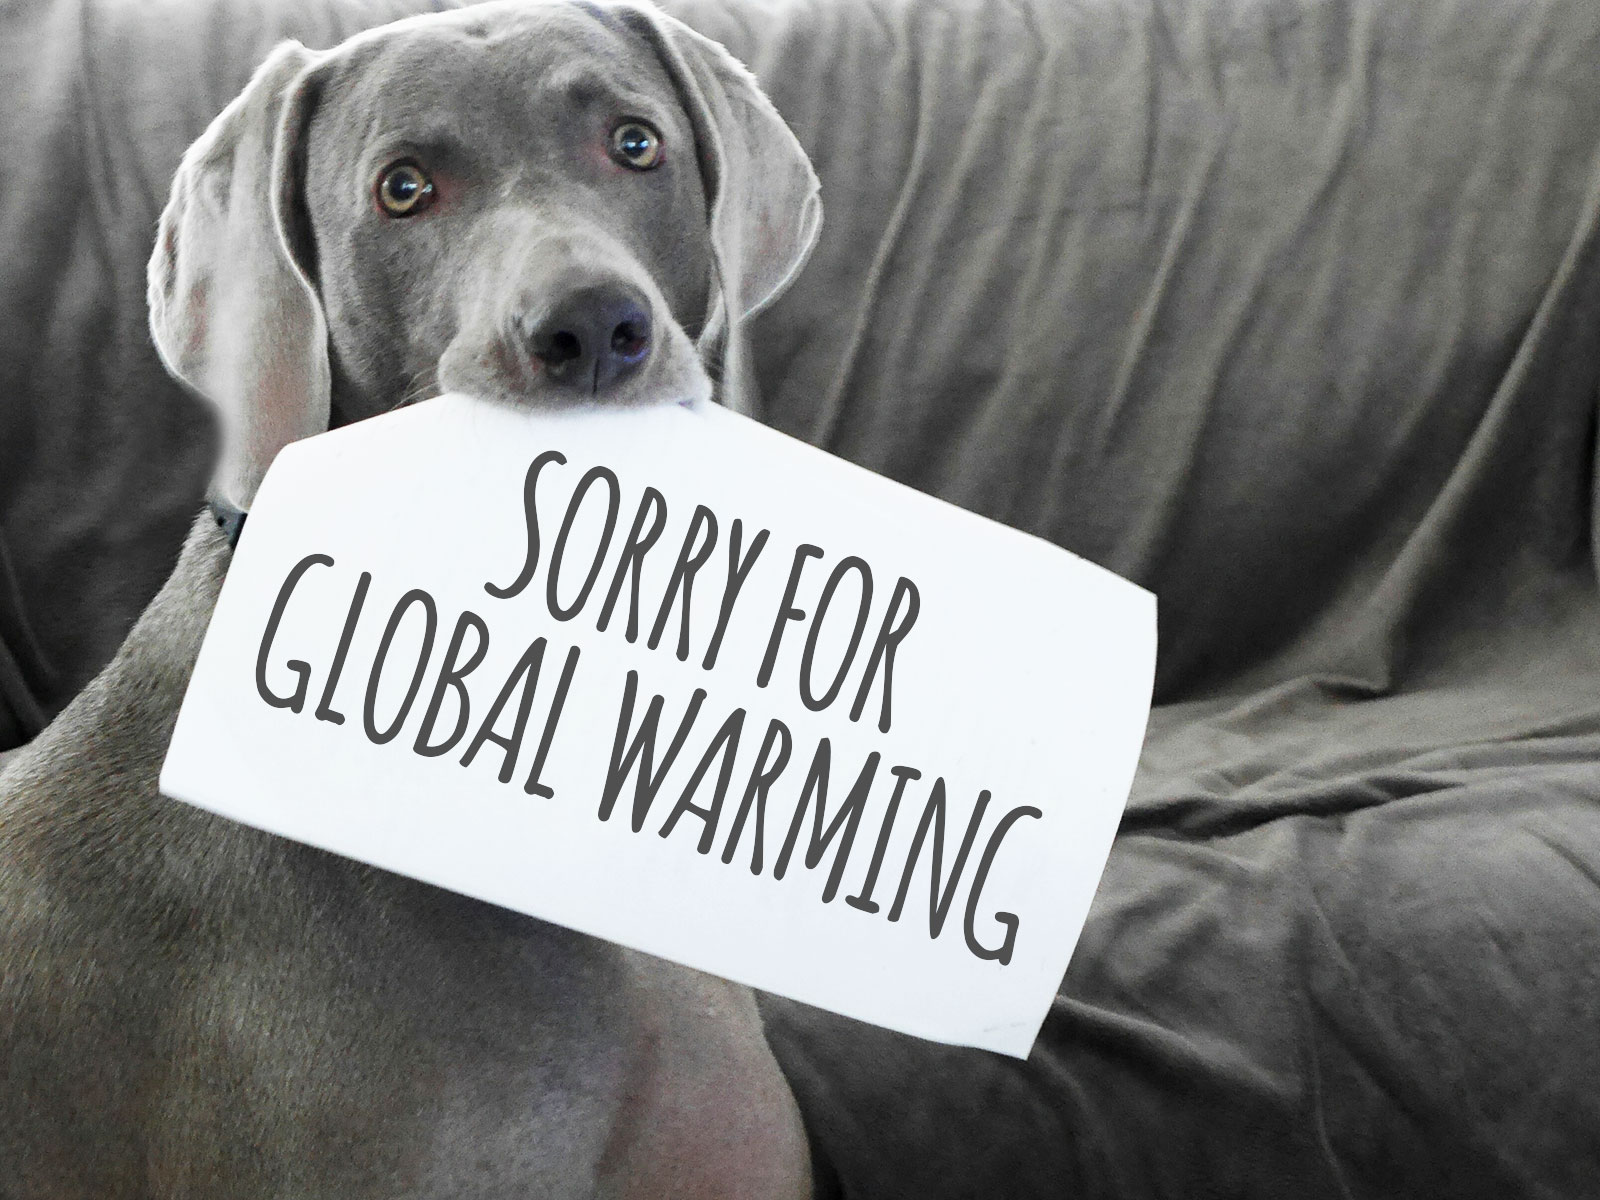 sorry for global warming